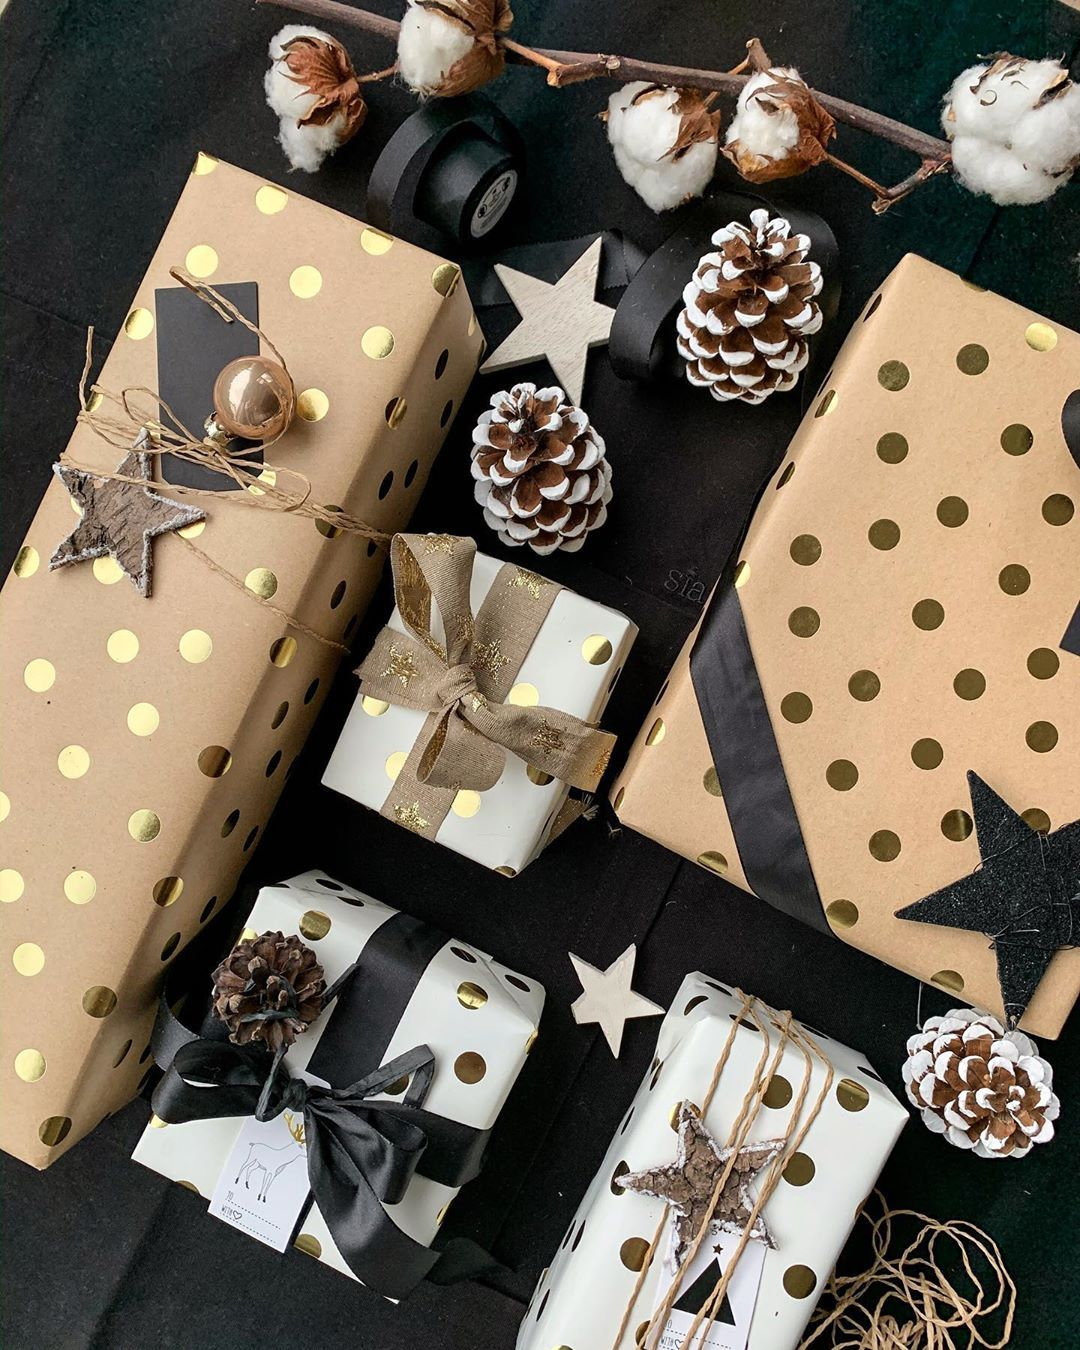 24 Cute Diy Christmas Gift Wrapping Ideas The Creatives Hour Elegant Gift Wrapping Christmas Christmas Gift Wrapping Diy Christmas Gift Wrapping